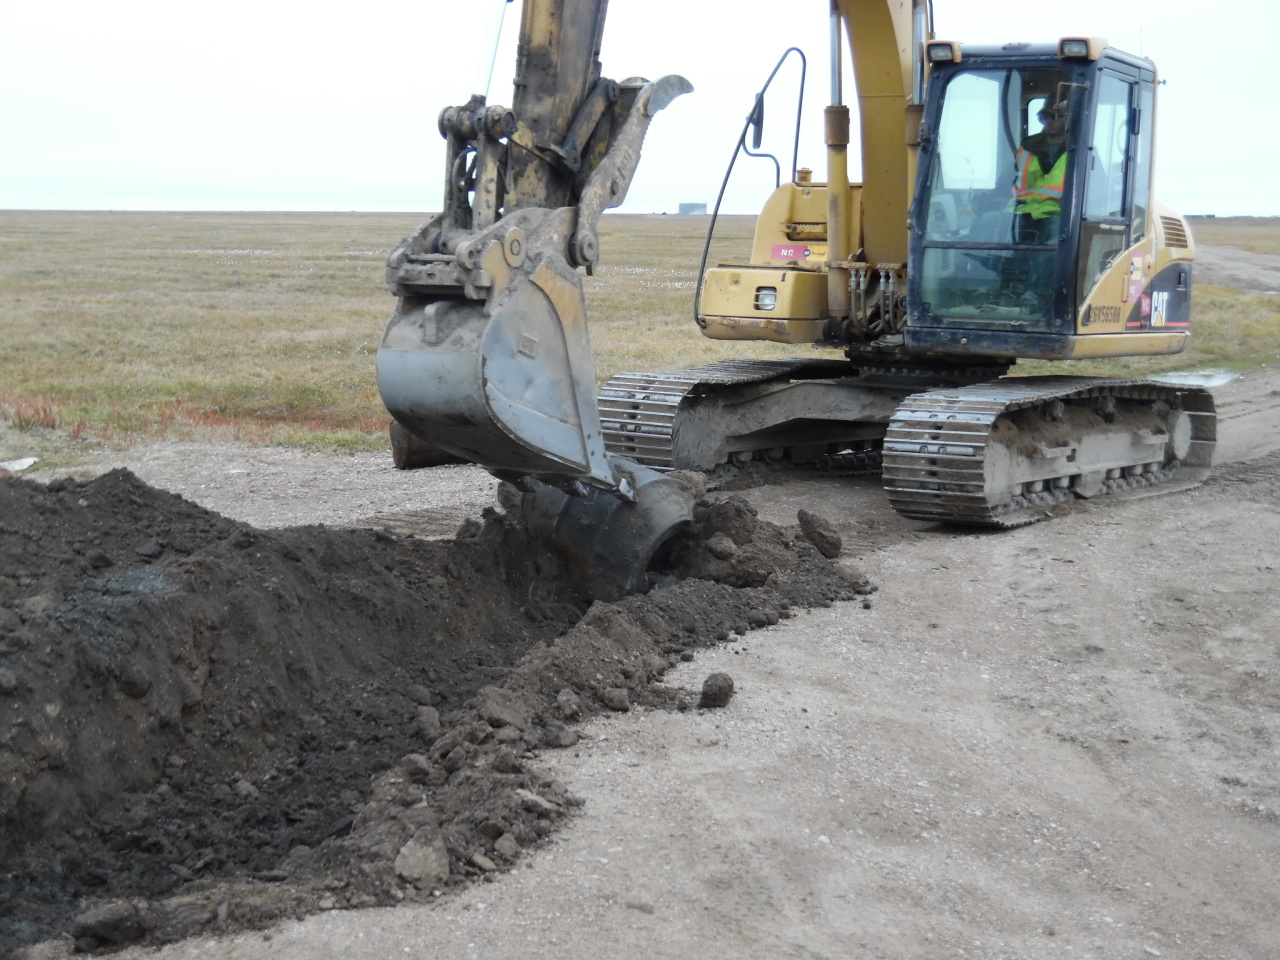 Removing debris, discovered with the EM-61 metal detector, from a landfill in Northern Alaska